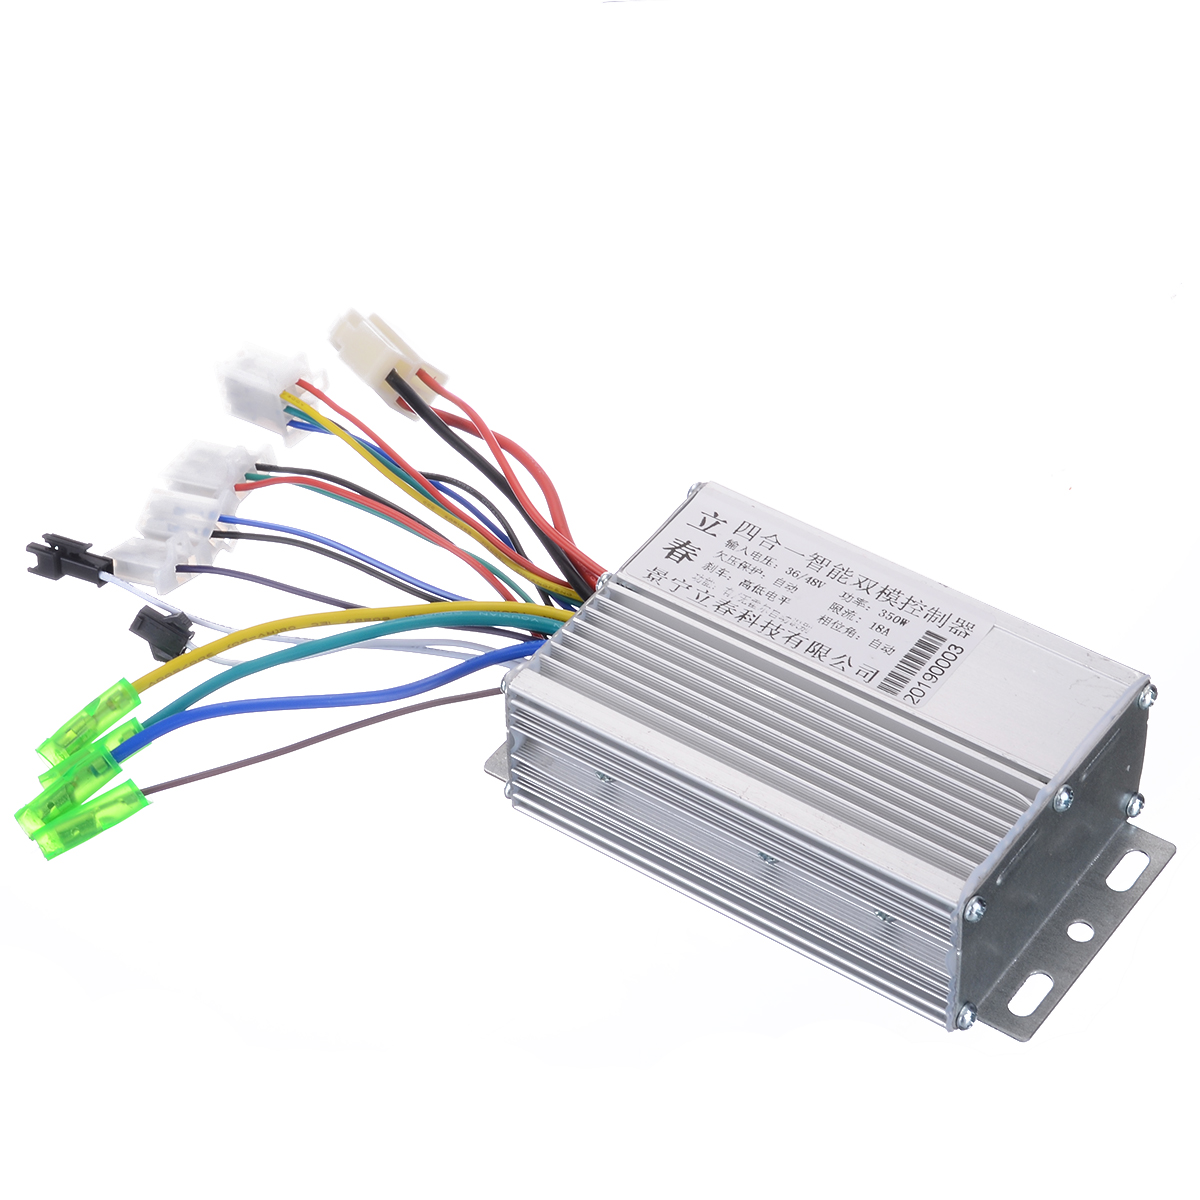 1Pcs Aluminium Brushless DC Motor Controller 36V/48V 350W 103x70x35mm For Electric Bicycle E-bike Scooter1Pcs Aluminium Brushless DC Motor Controller 36V/48V 350W 103x70x35mm For Electric Bicycle E-bike Scooter